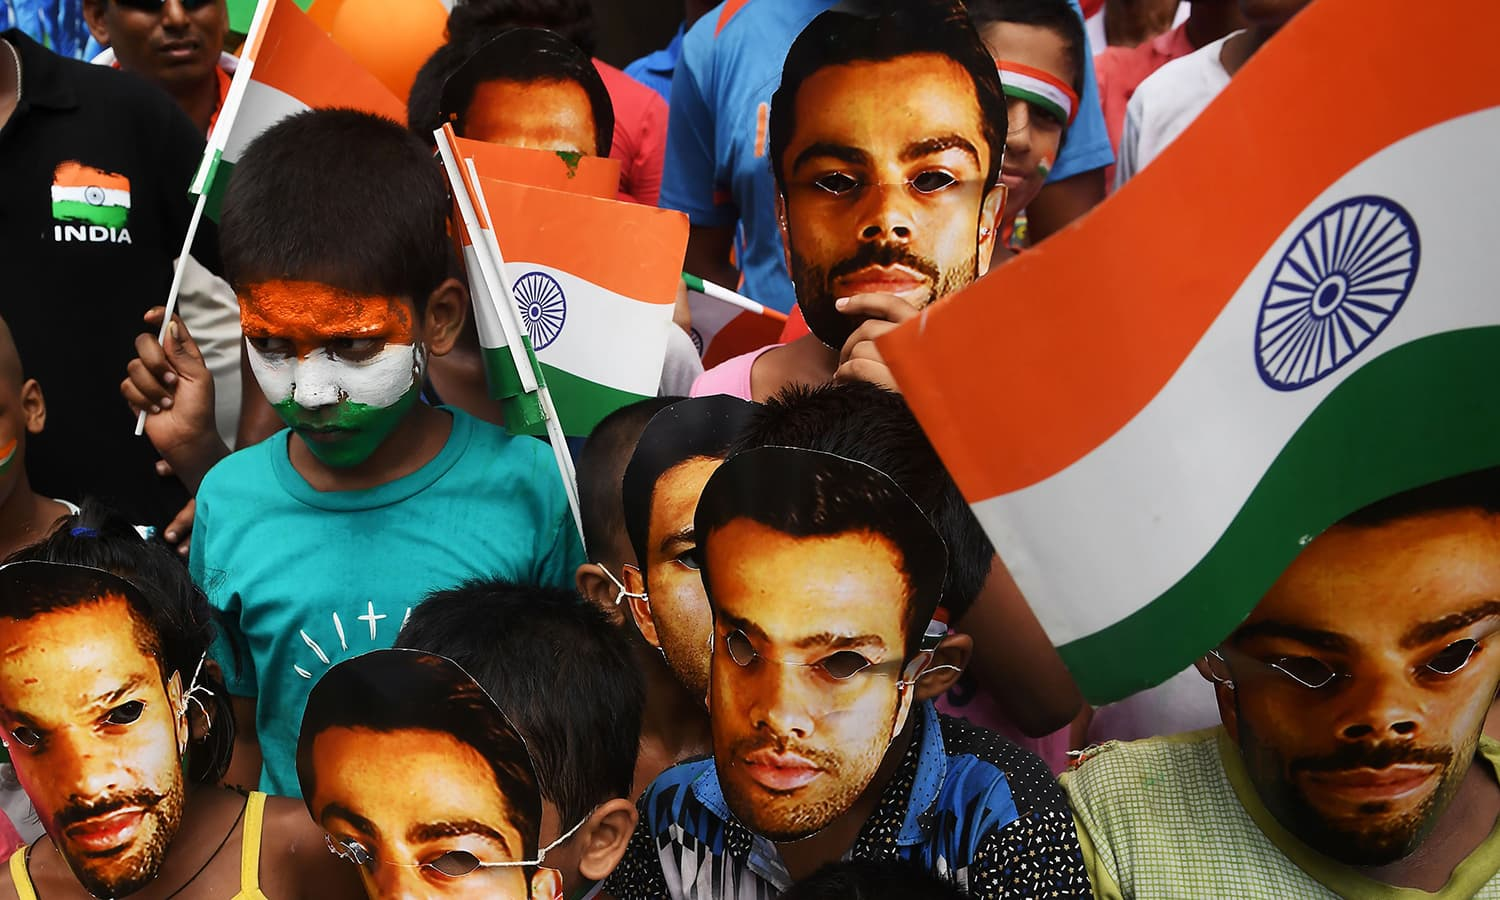 Young Indian cricket fans wear masks of the face of India's captain Virat Kohli and others in Kolkata on June 18.─AFP